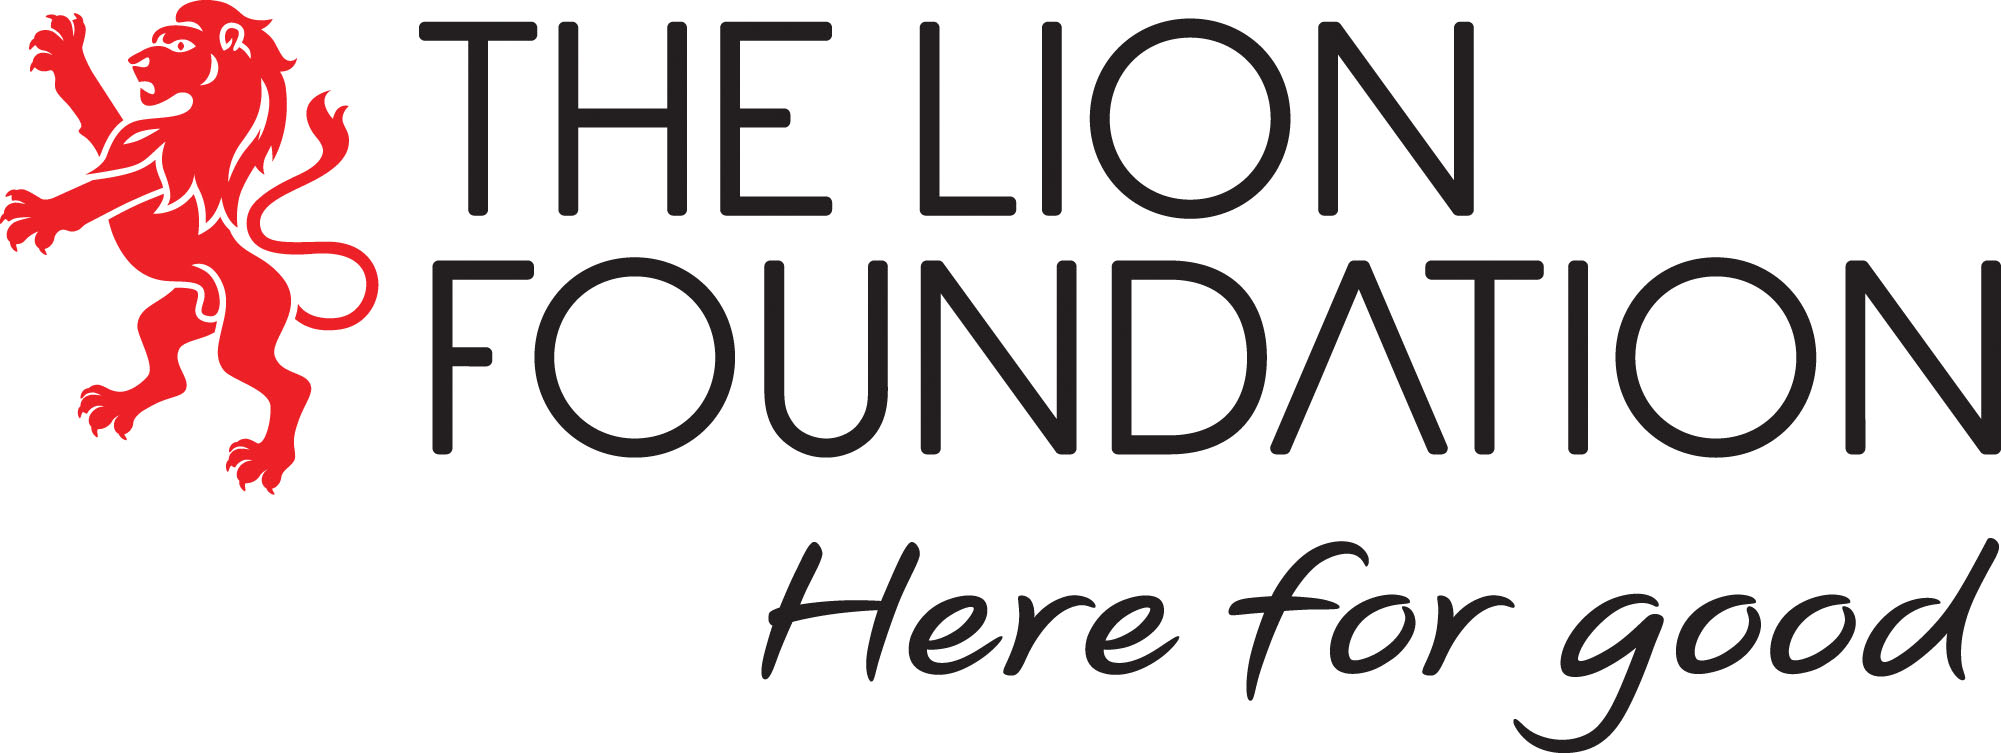 Funding_Lion_Foundation.jpg